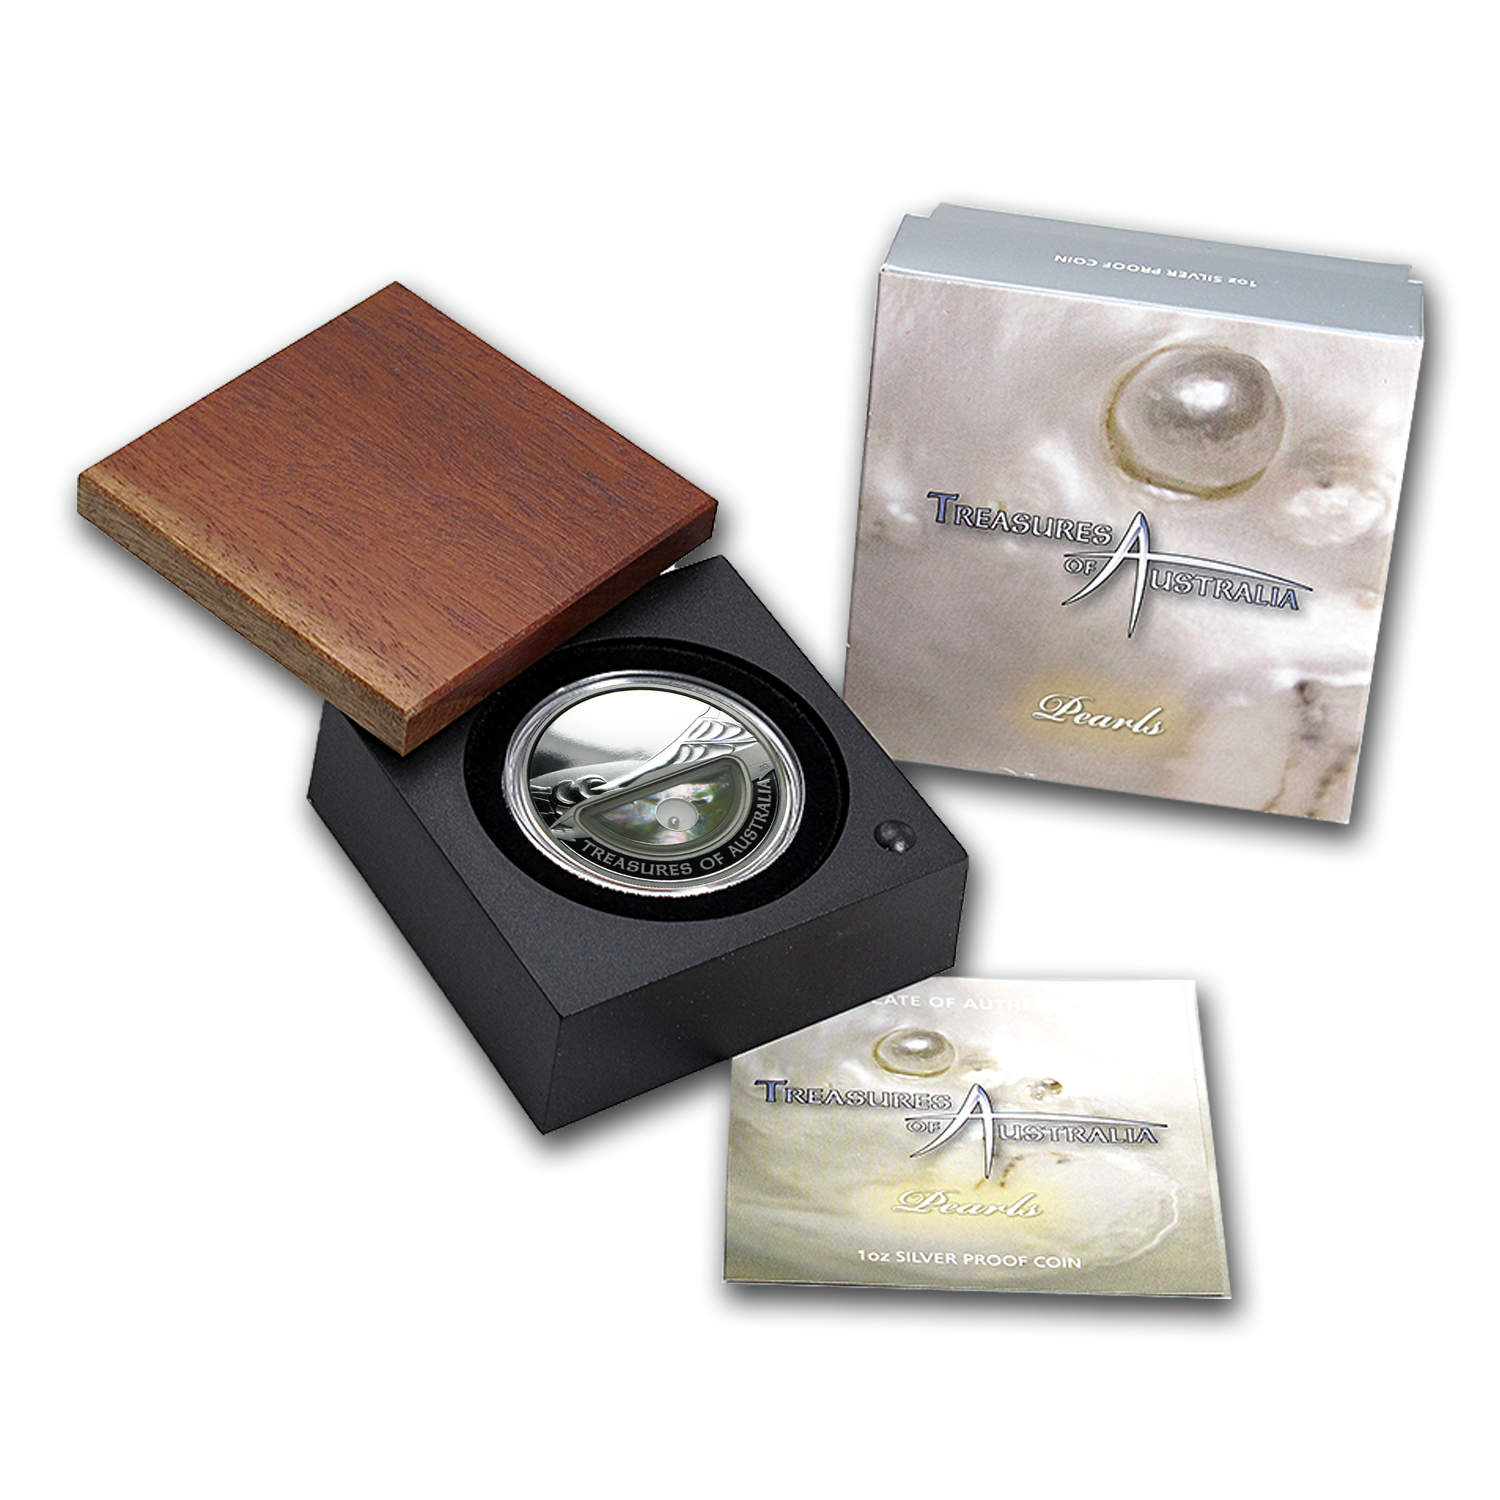 2011 1 oz Silver Treasures of Australia Proof (Pearl)